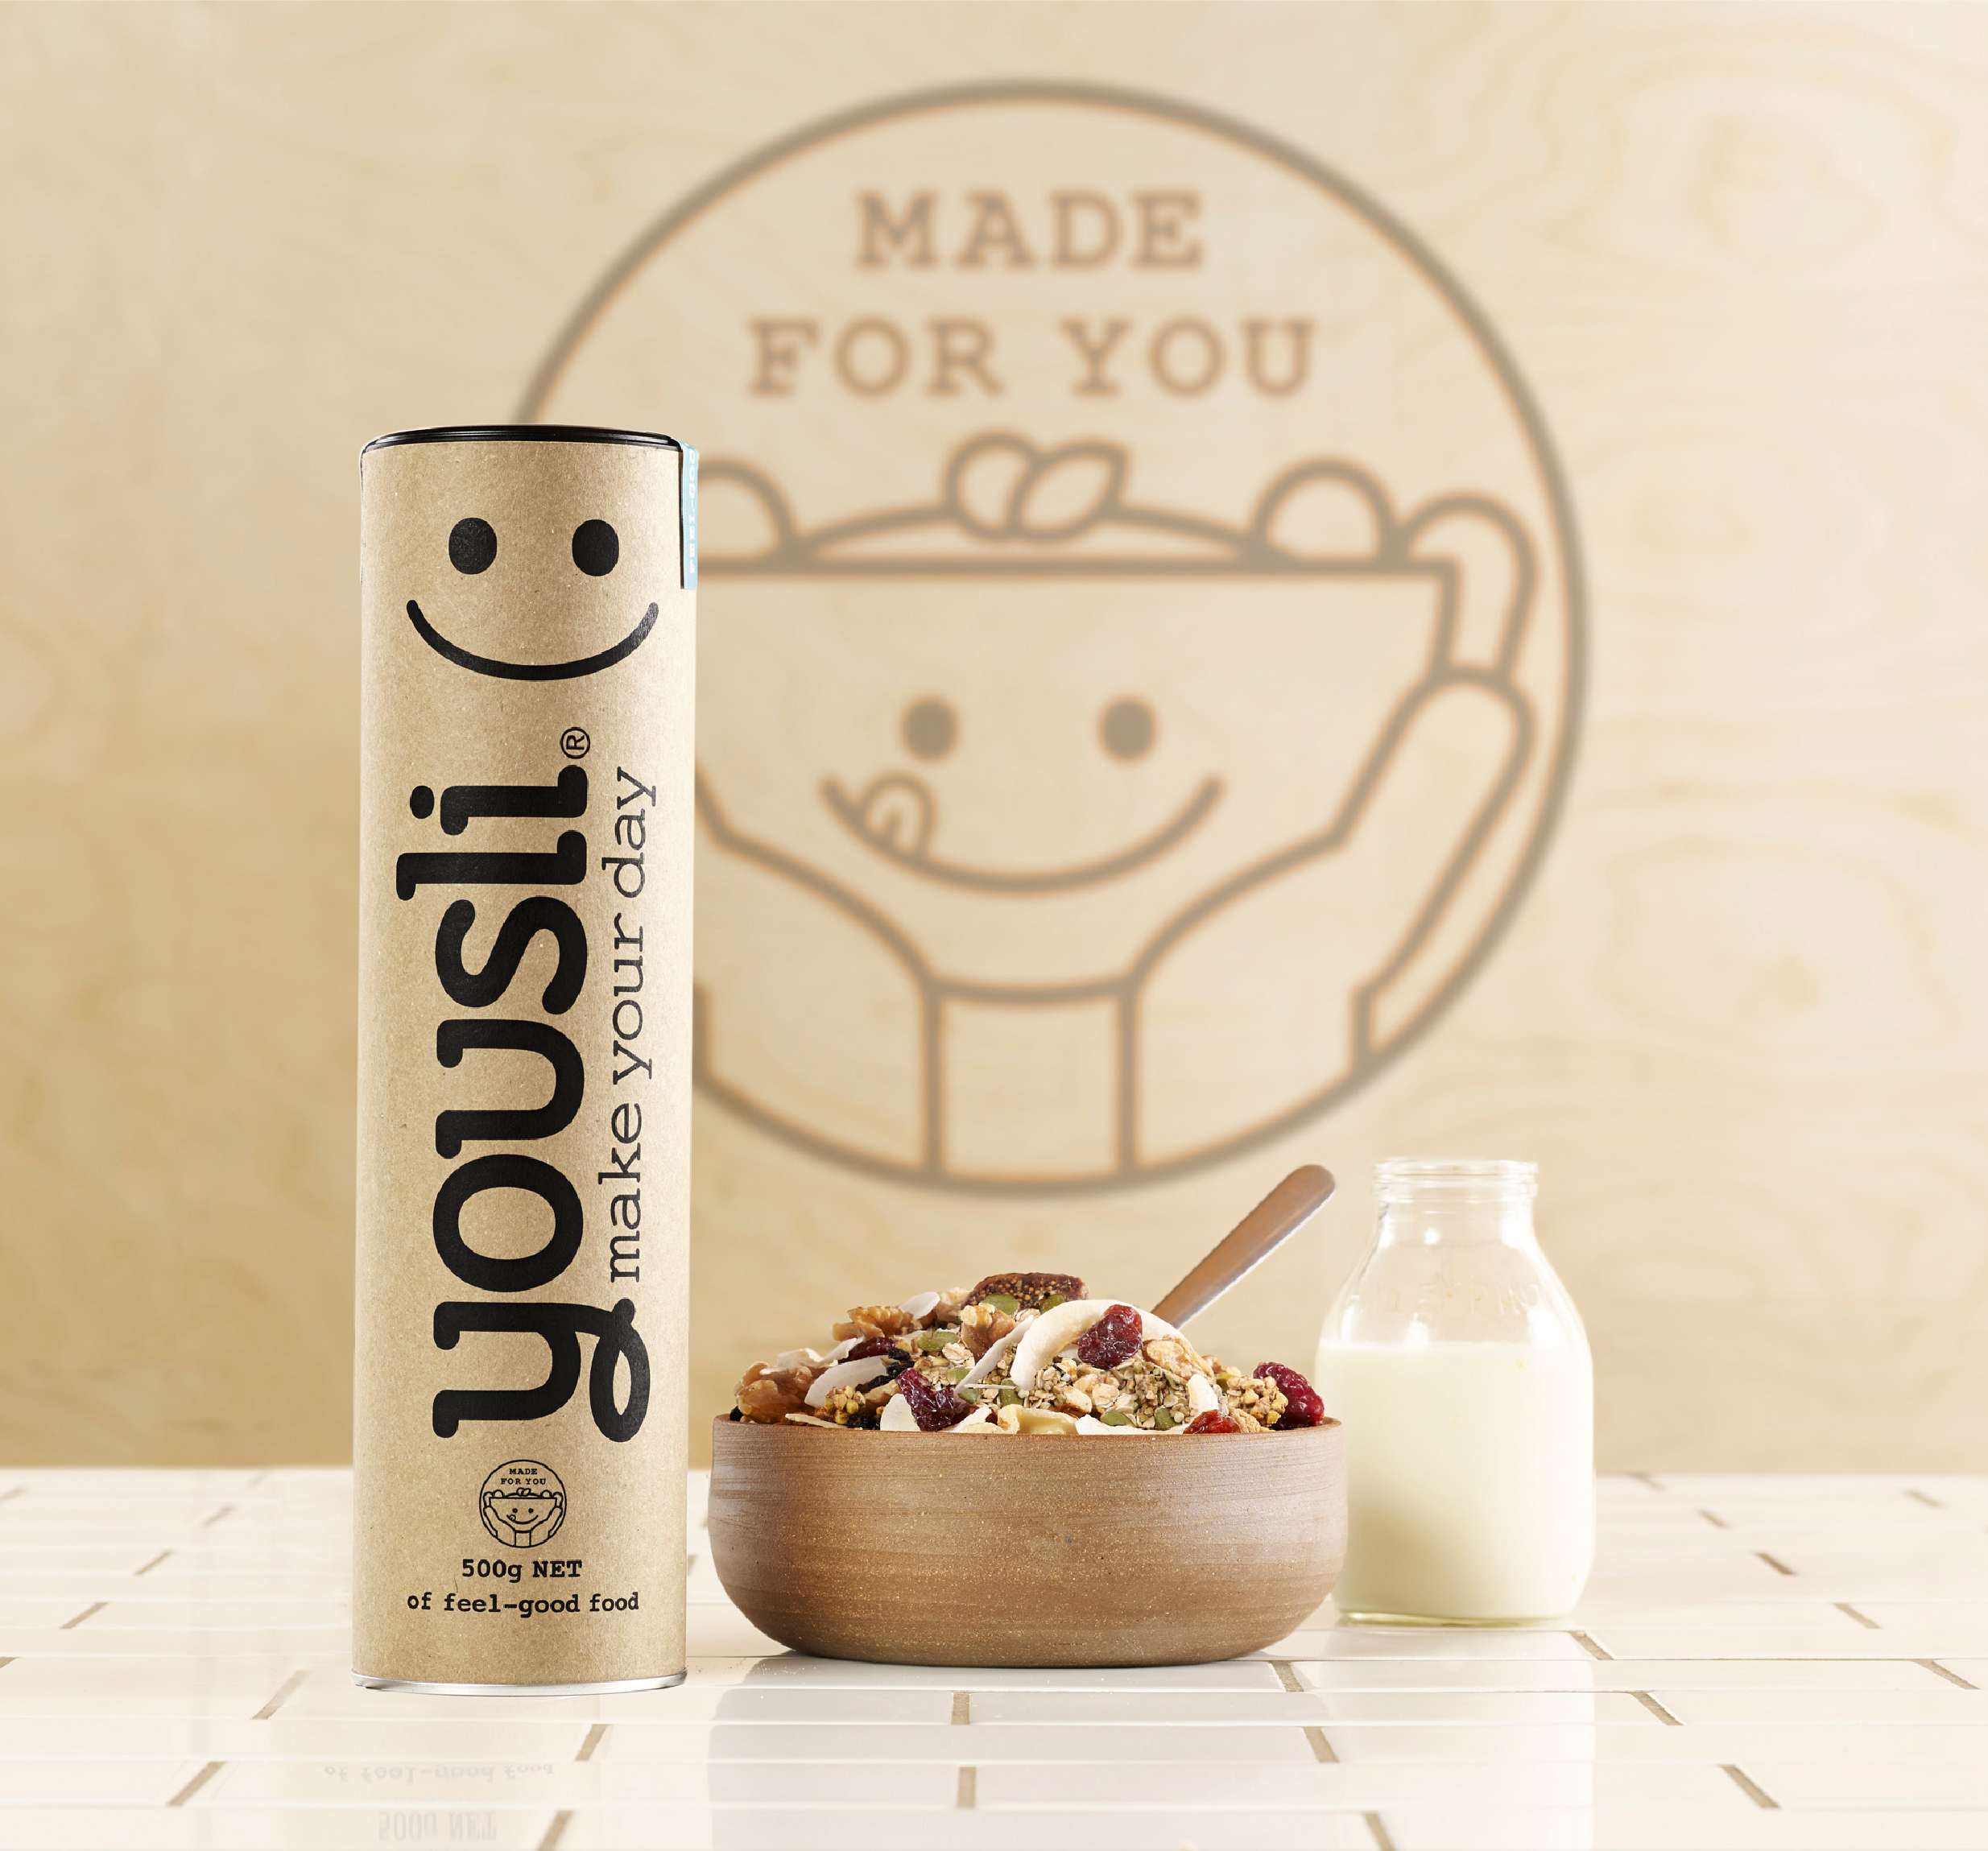 Yousli Brand Packaging Design on tiles and cereal bowl